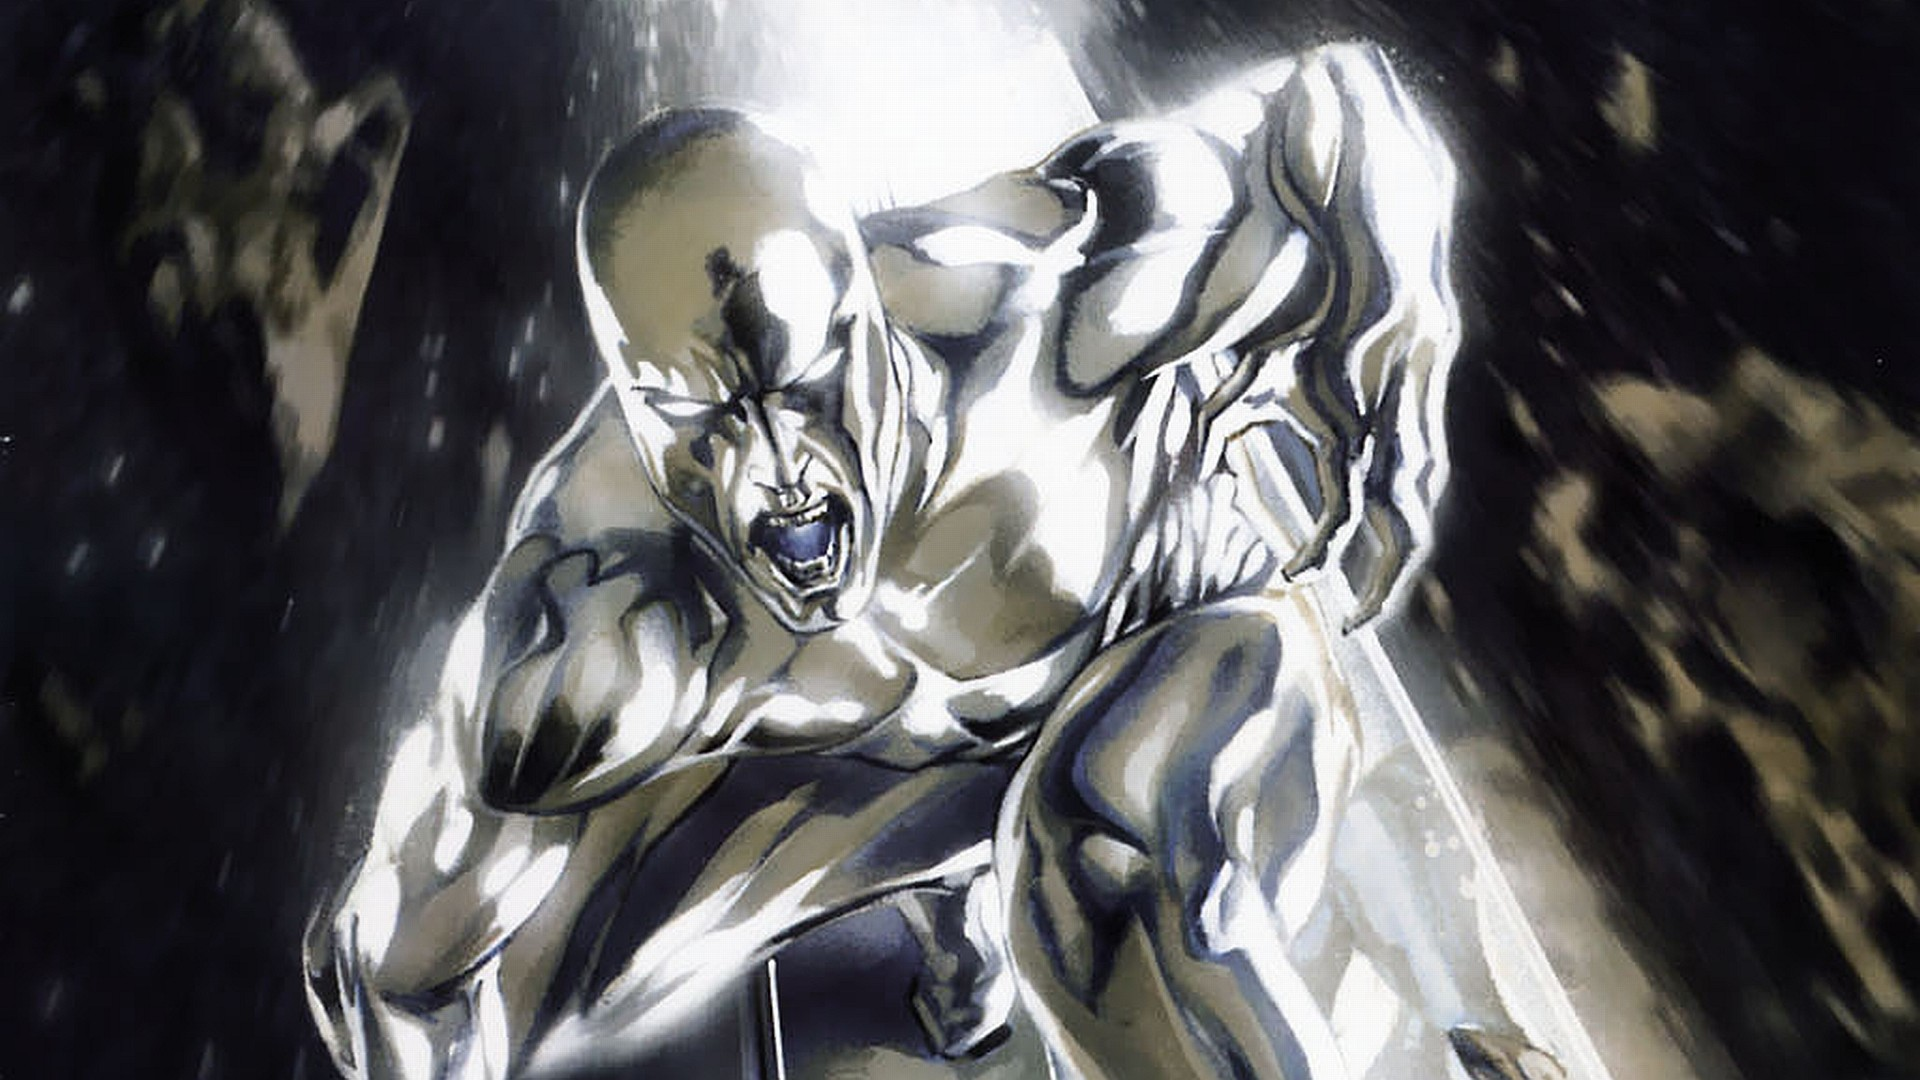 1920x1080 55 Silver Surfer HD Wallpapers | Backgrounds - Wallpaper Abyss - Page 2